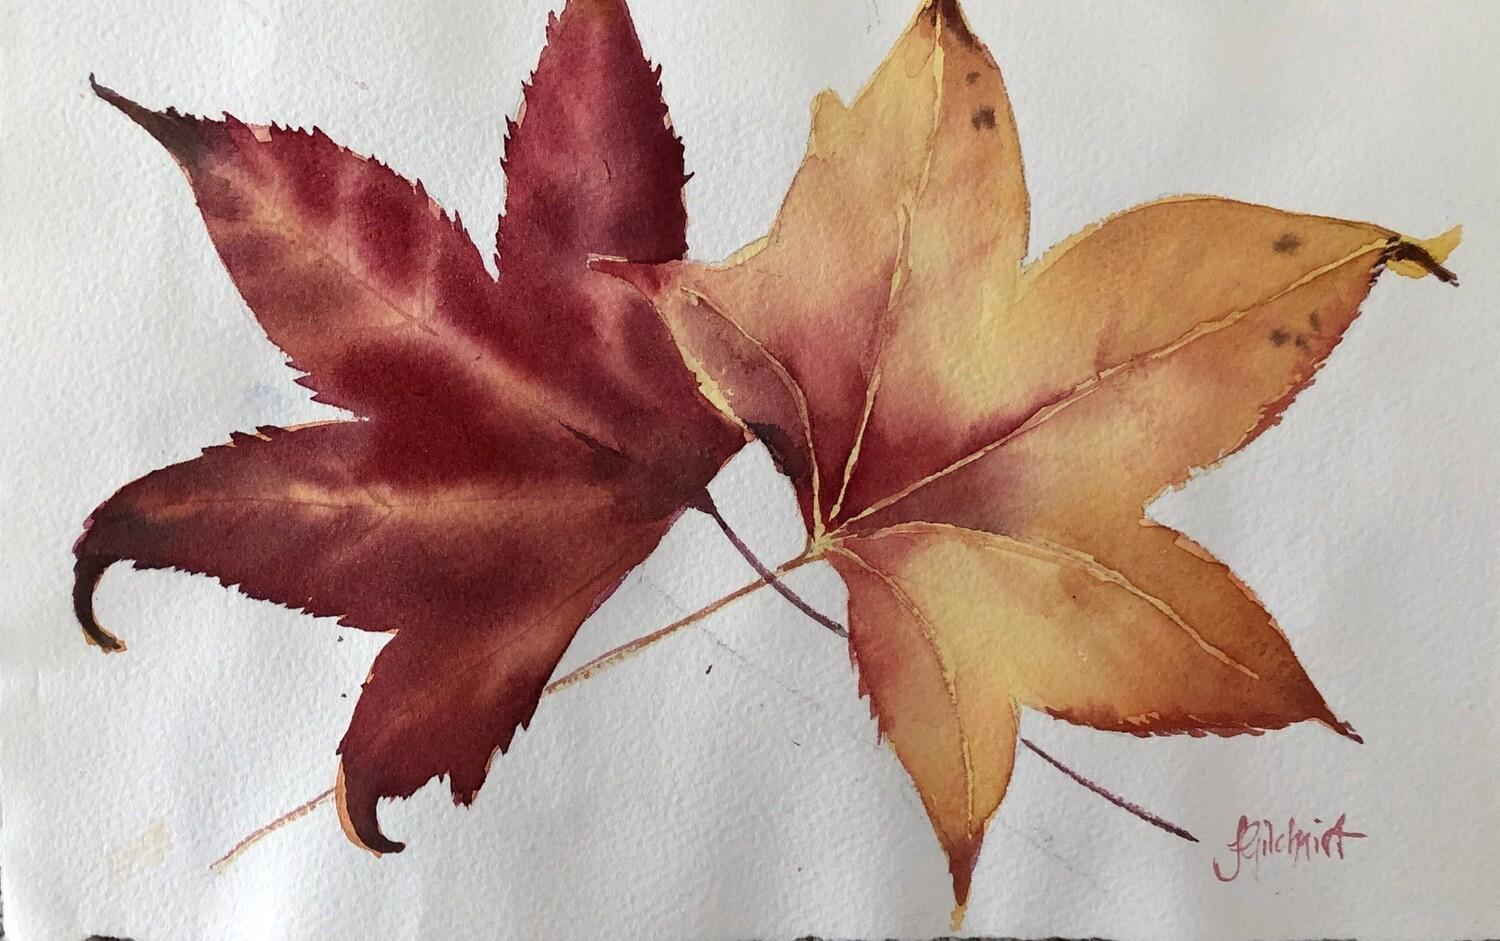 PAINTING for Sale: Red and Gold - Medium Small - 1/8th sheet original watercolour by Jenny Gilchrist